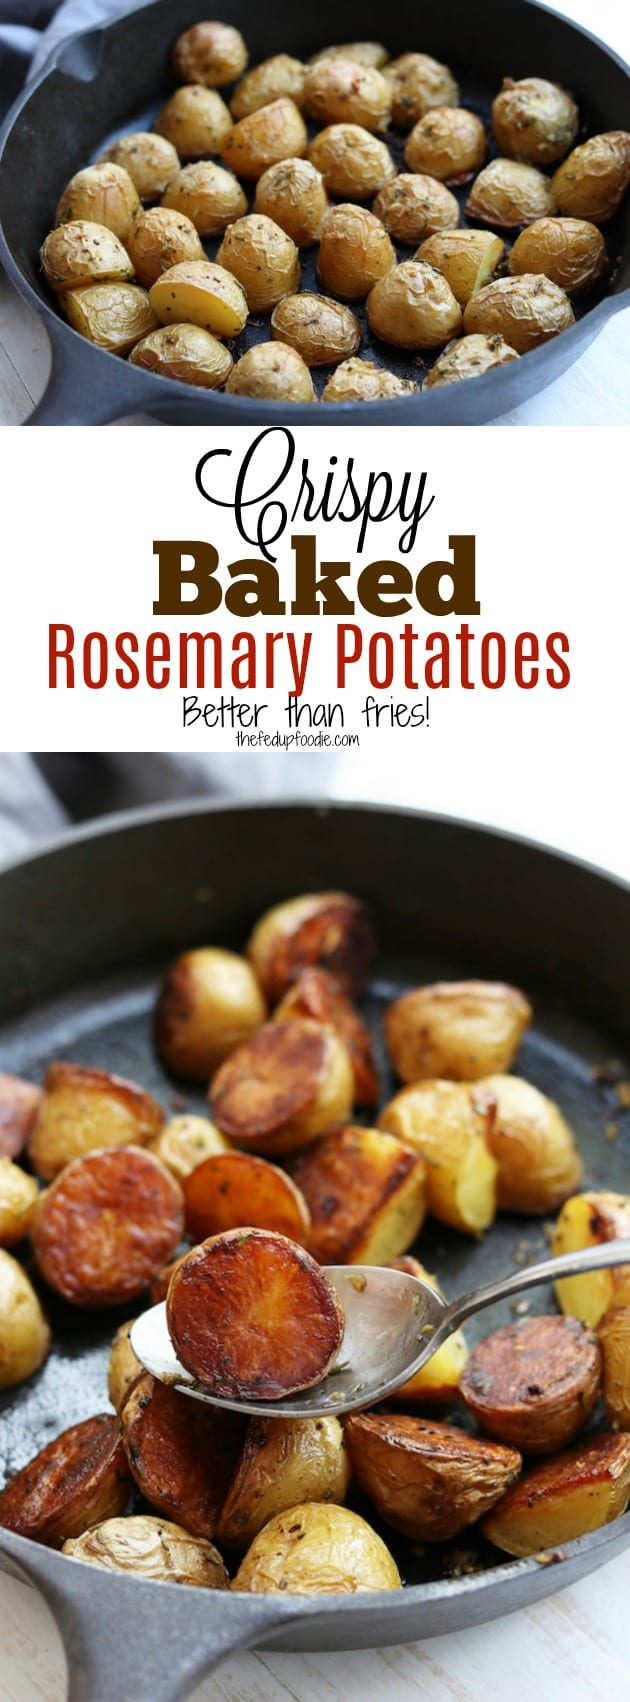 Crispy Baked Rosemary Potatoes recipes creates tender on the inside and crispy on the outside flavorful baked potatoes. Super easy with only 5 minutes of preparation. A favorite for breakfast or dinner! https://www.thefedupfoodie.com